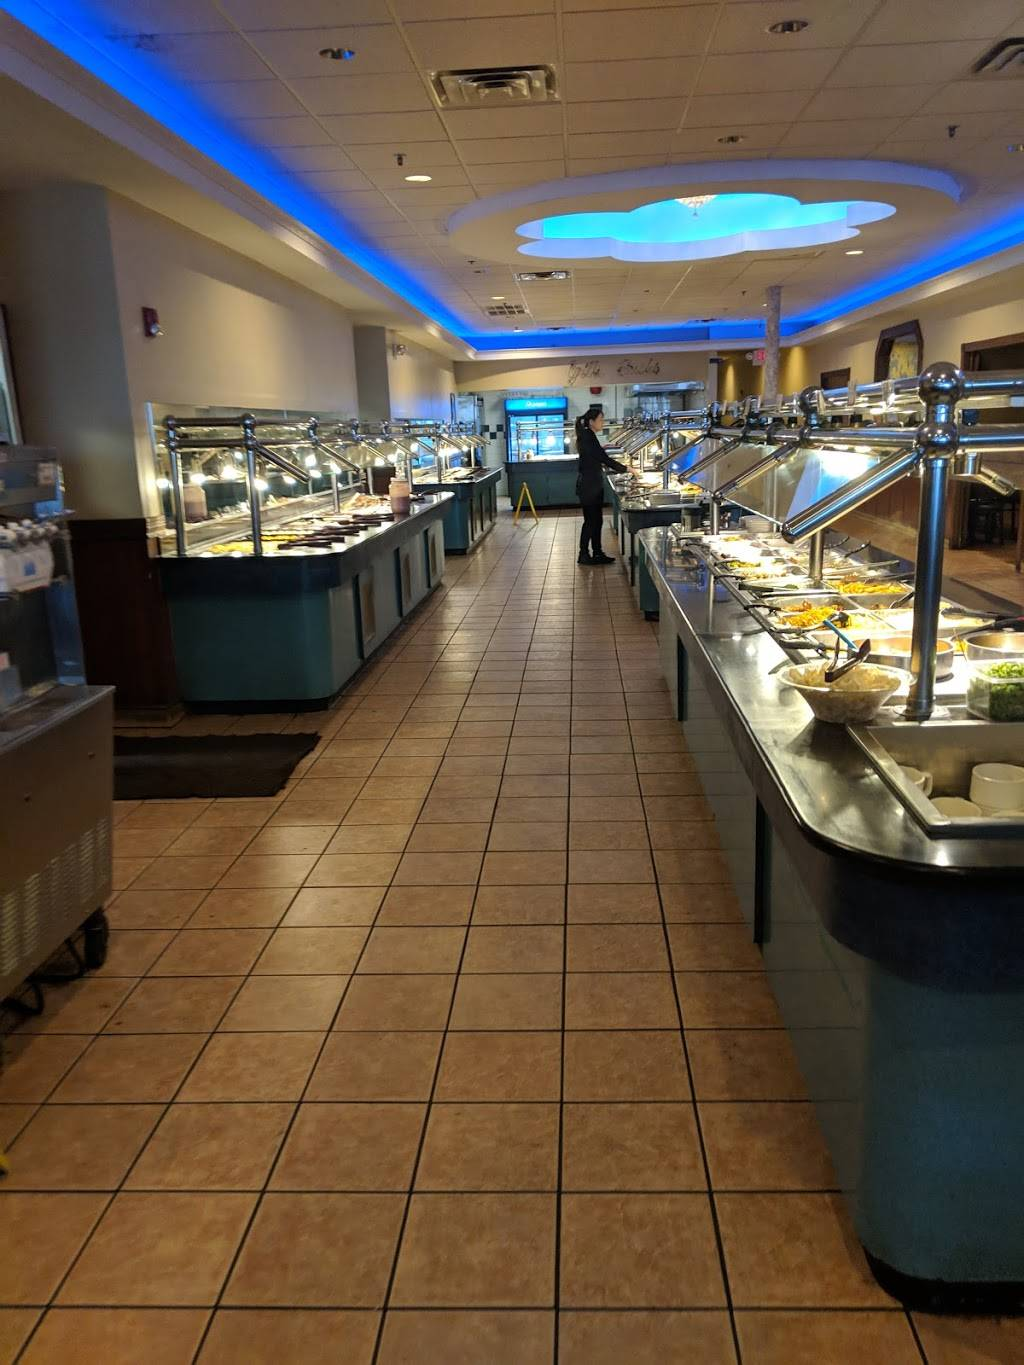 Great Wall Buffet | restaurant | 3333 Telephone Rd # Q, Houston, TX 77023, USA | 7139286588 OR +1 713-928-6588